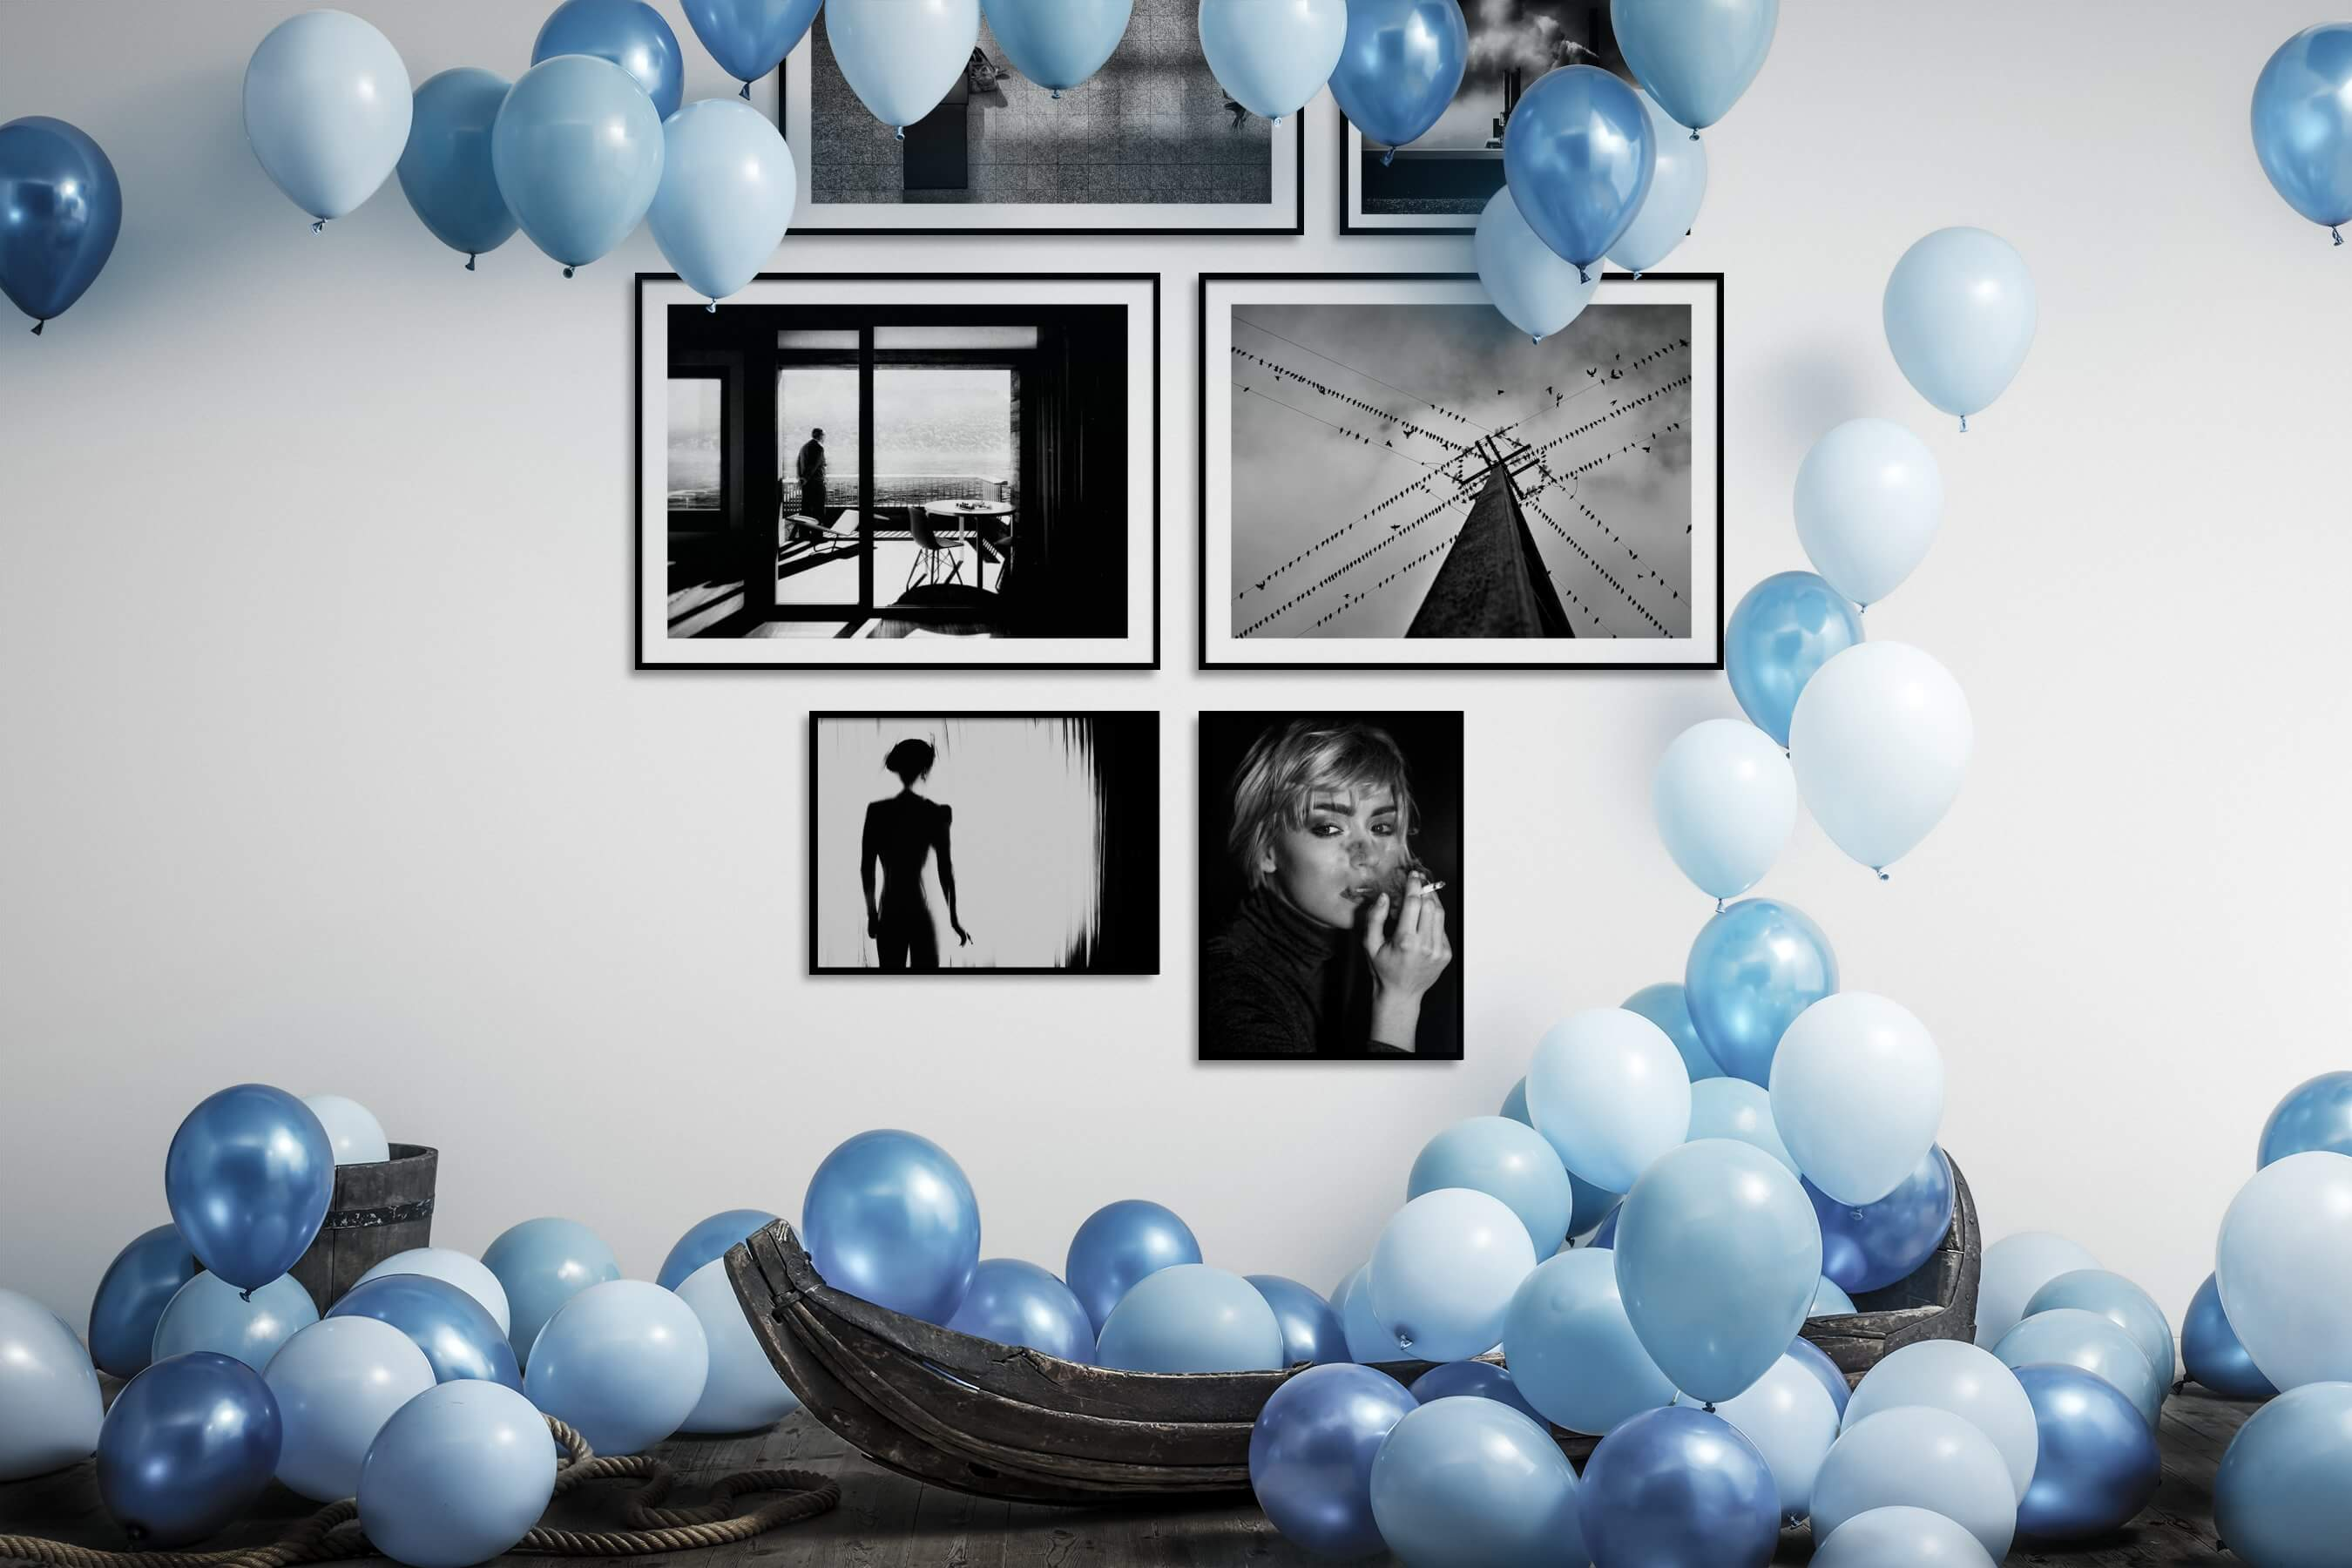 Gallery wall idea with six framed pictures arranged on a wall depicting Black & White, City Life, For the Moderate, Artsy, and Fashion & Beauty